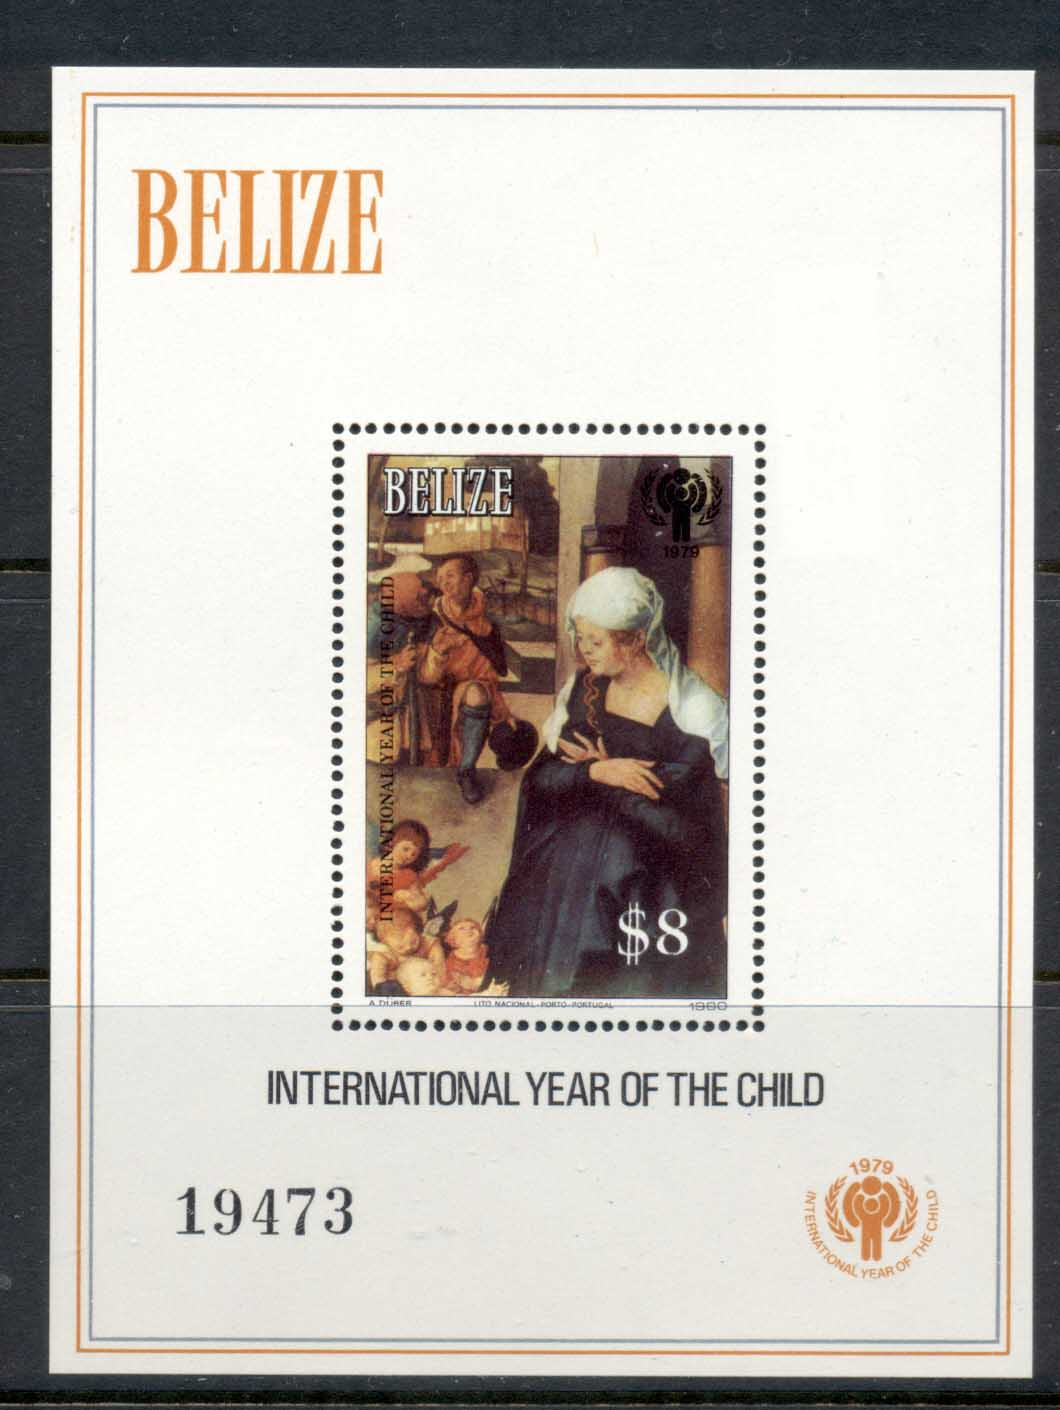 Belize 1980 IYC International year of the Child MS MUH